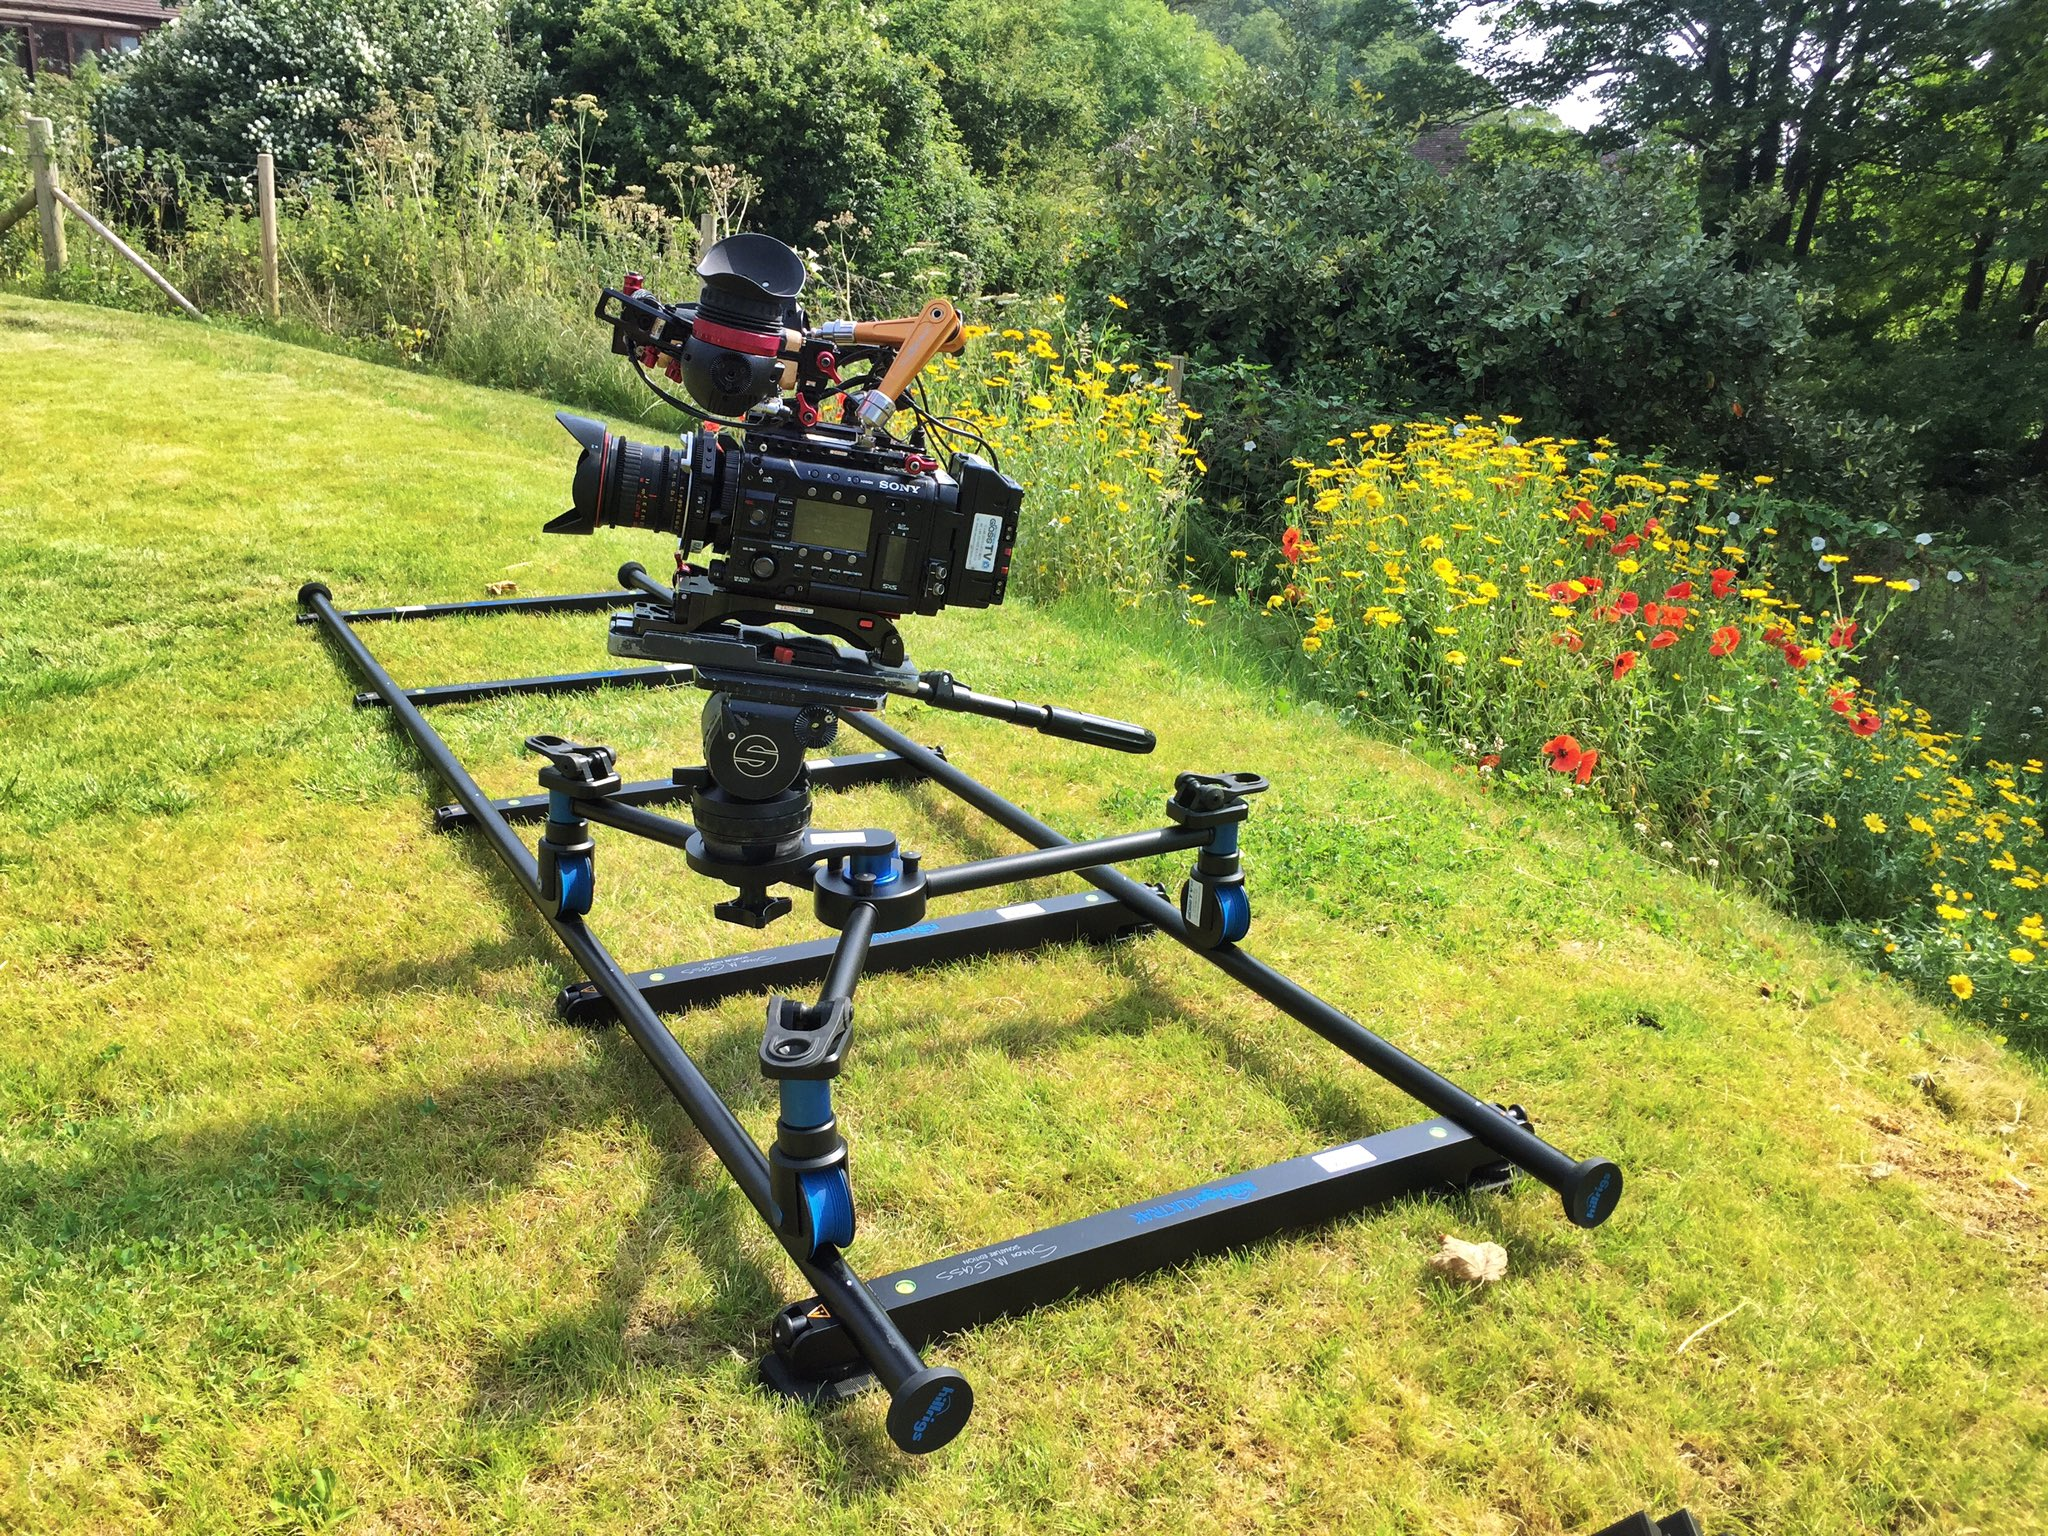 On location with our kit